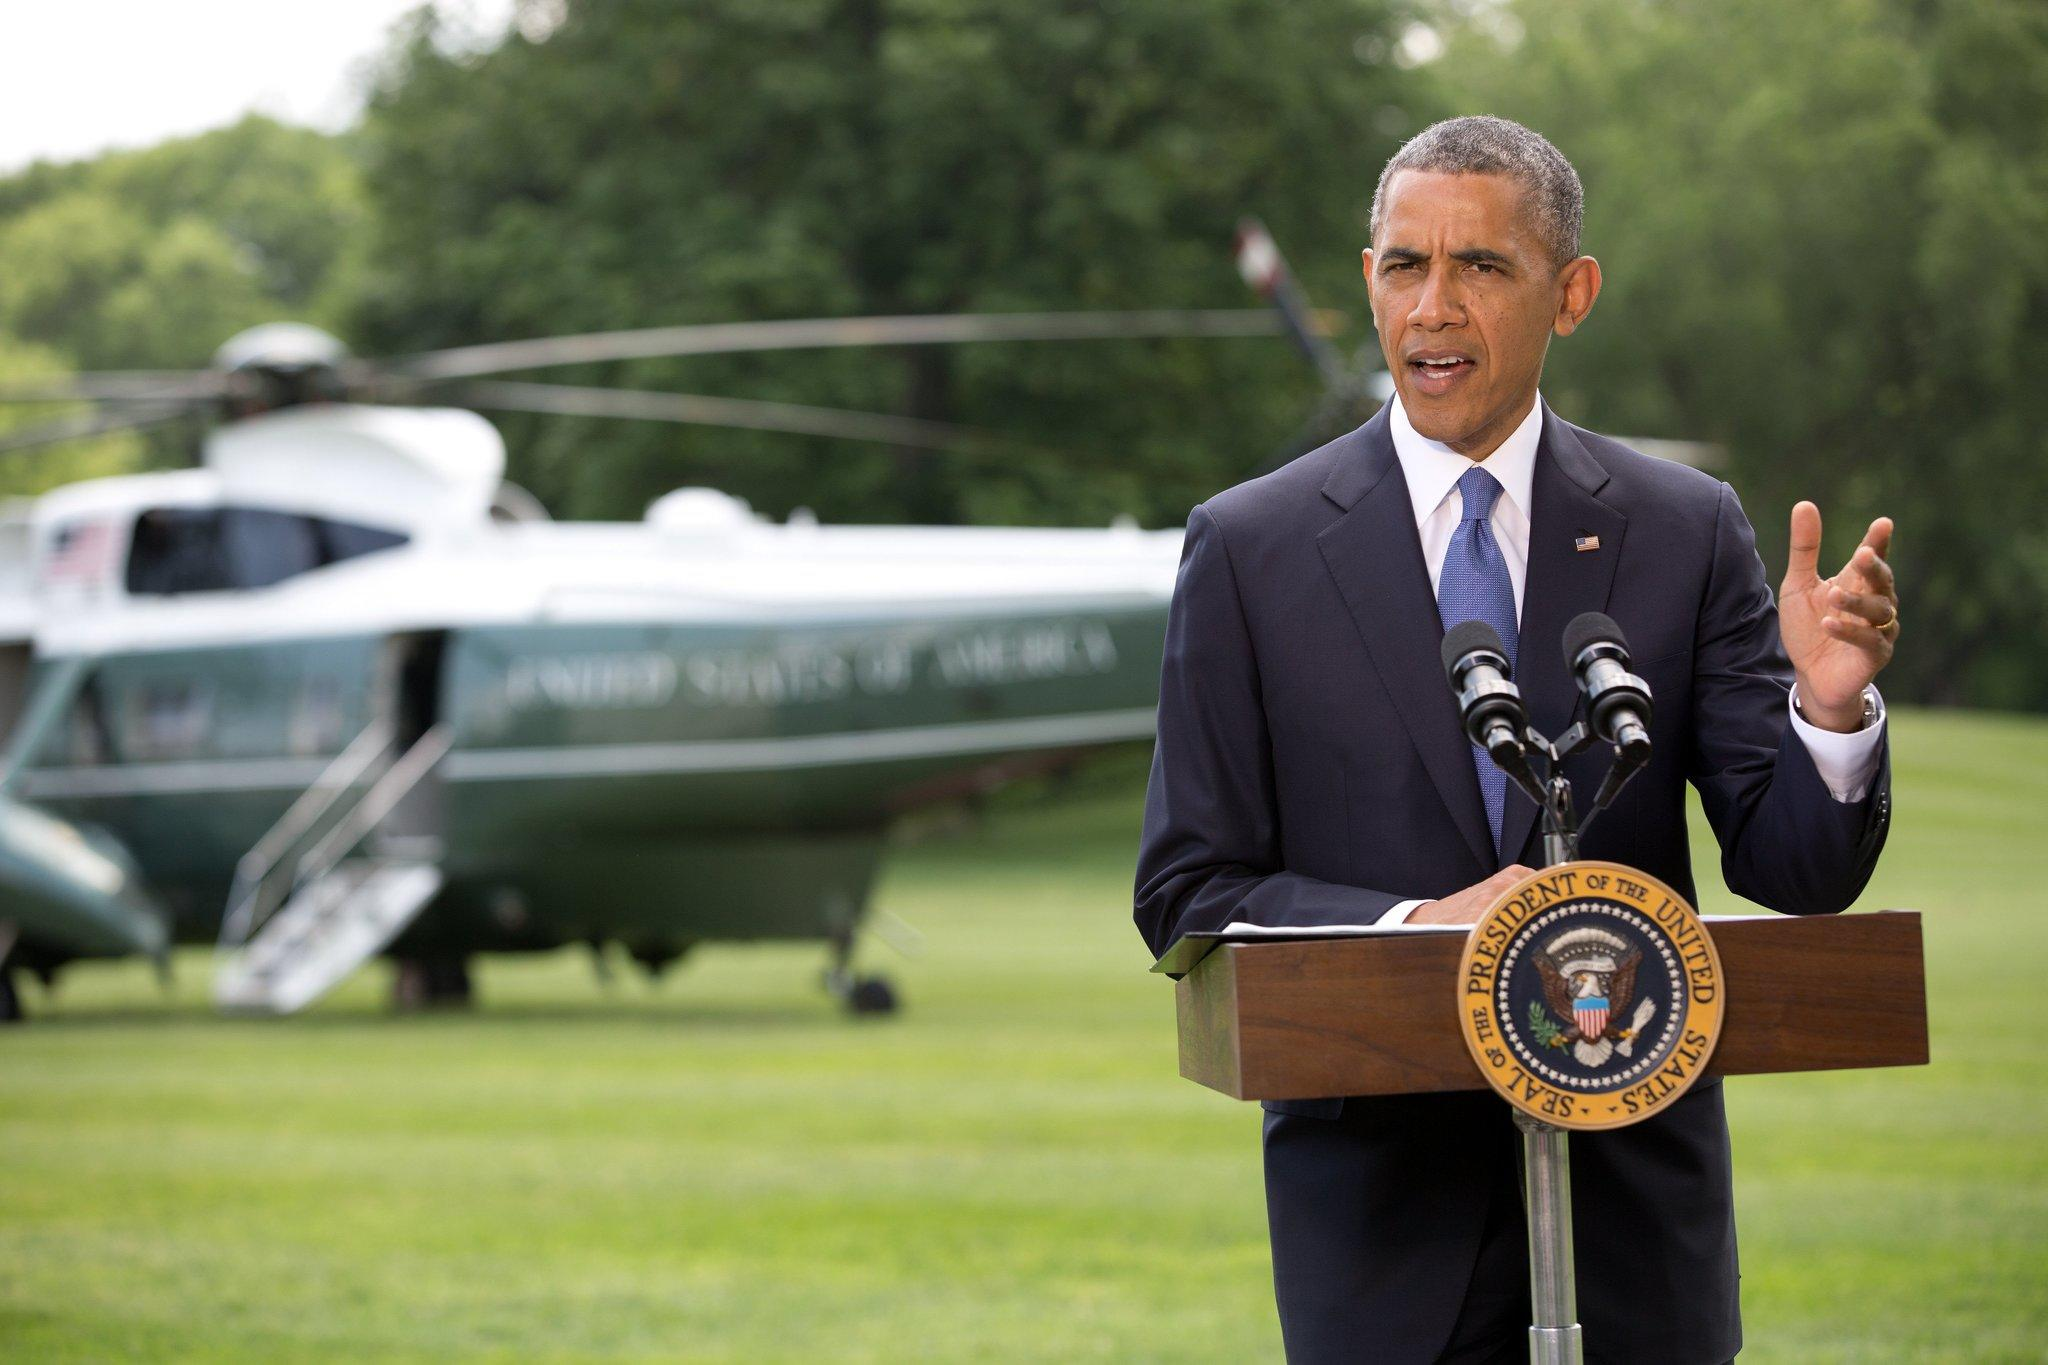 President Barack Obama makes a statement on the situation in Iraq prior to departing the South Lawn of the White House in Washington, D.C., for a trip to North Dakota on June 3